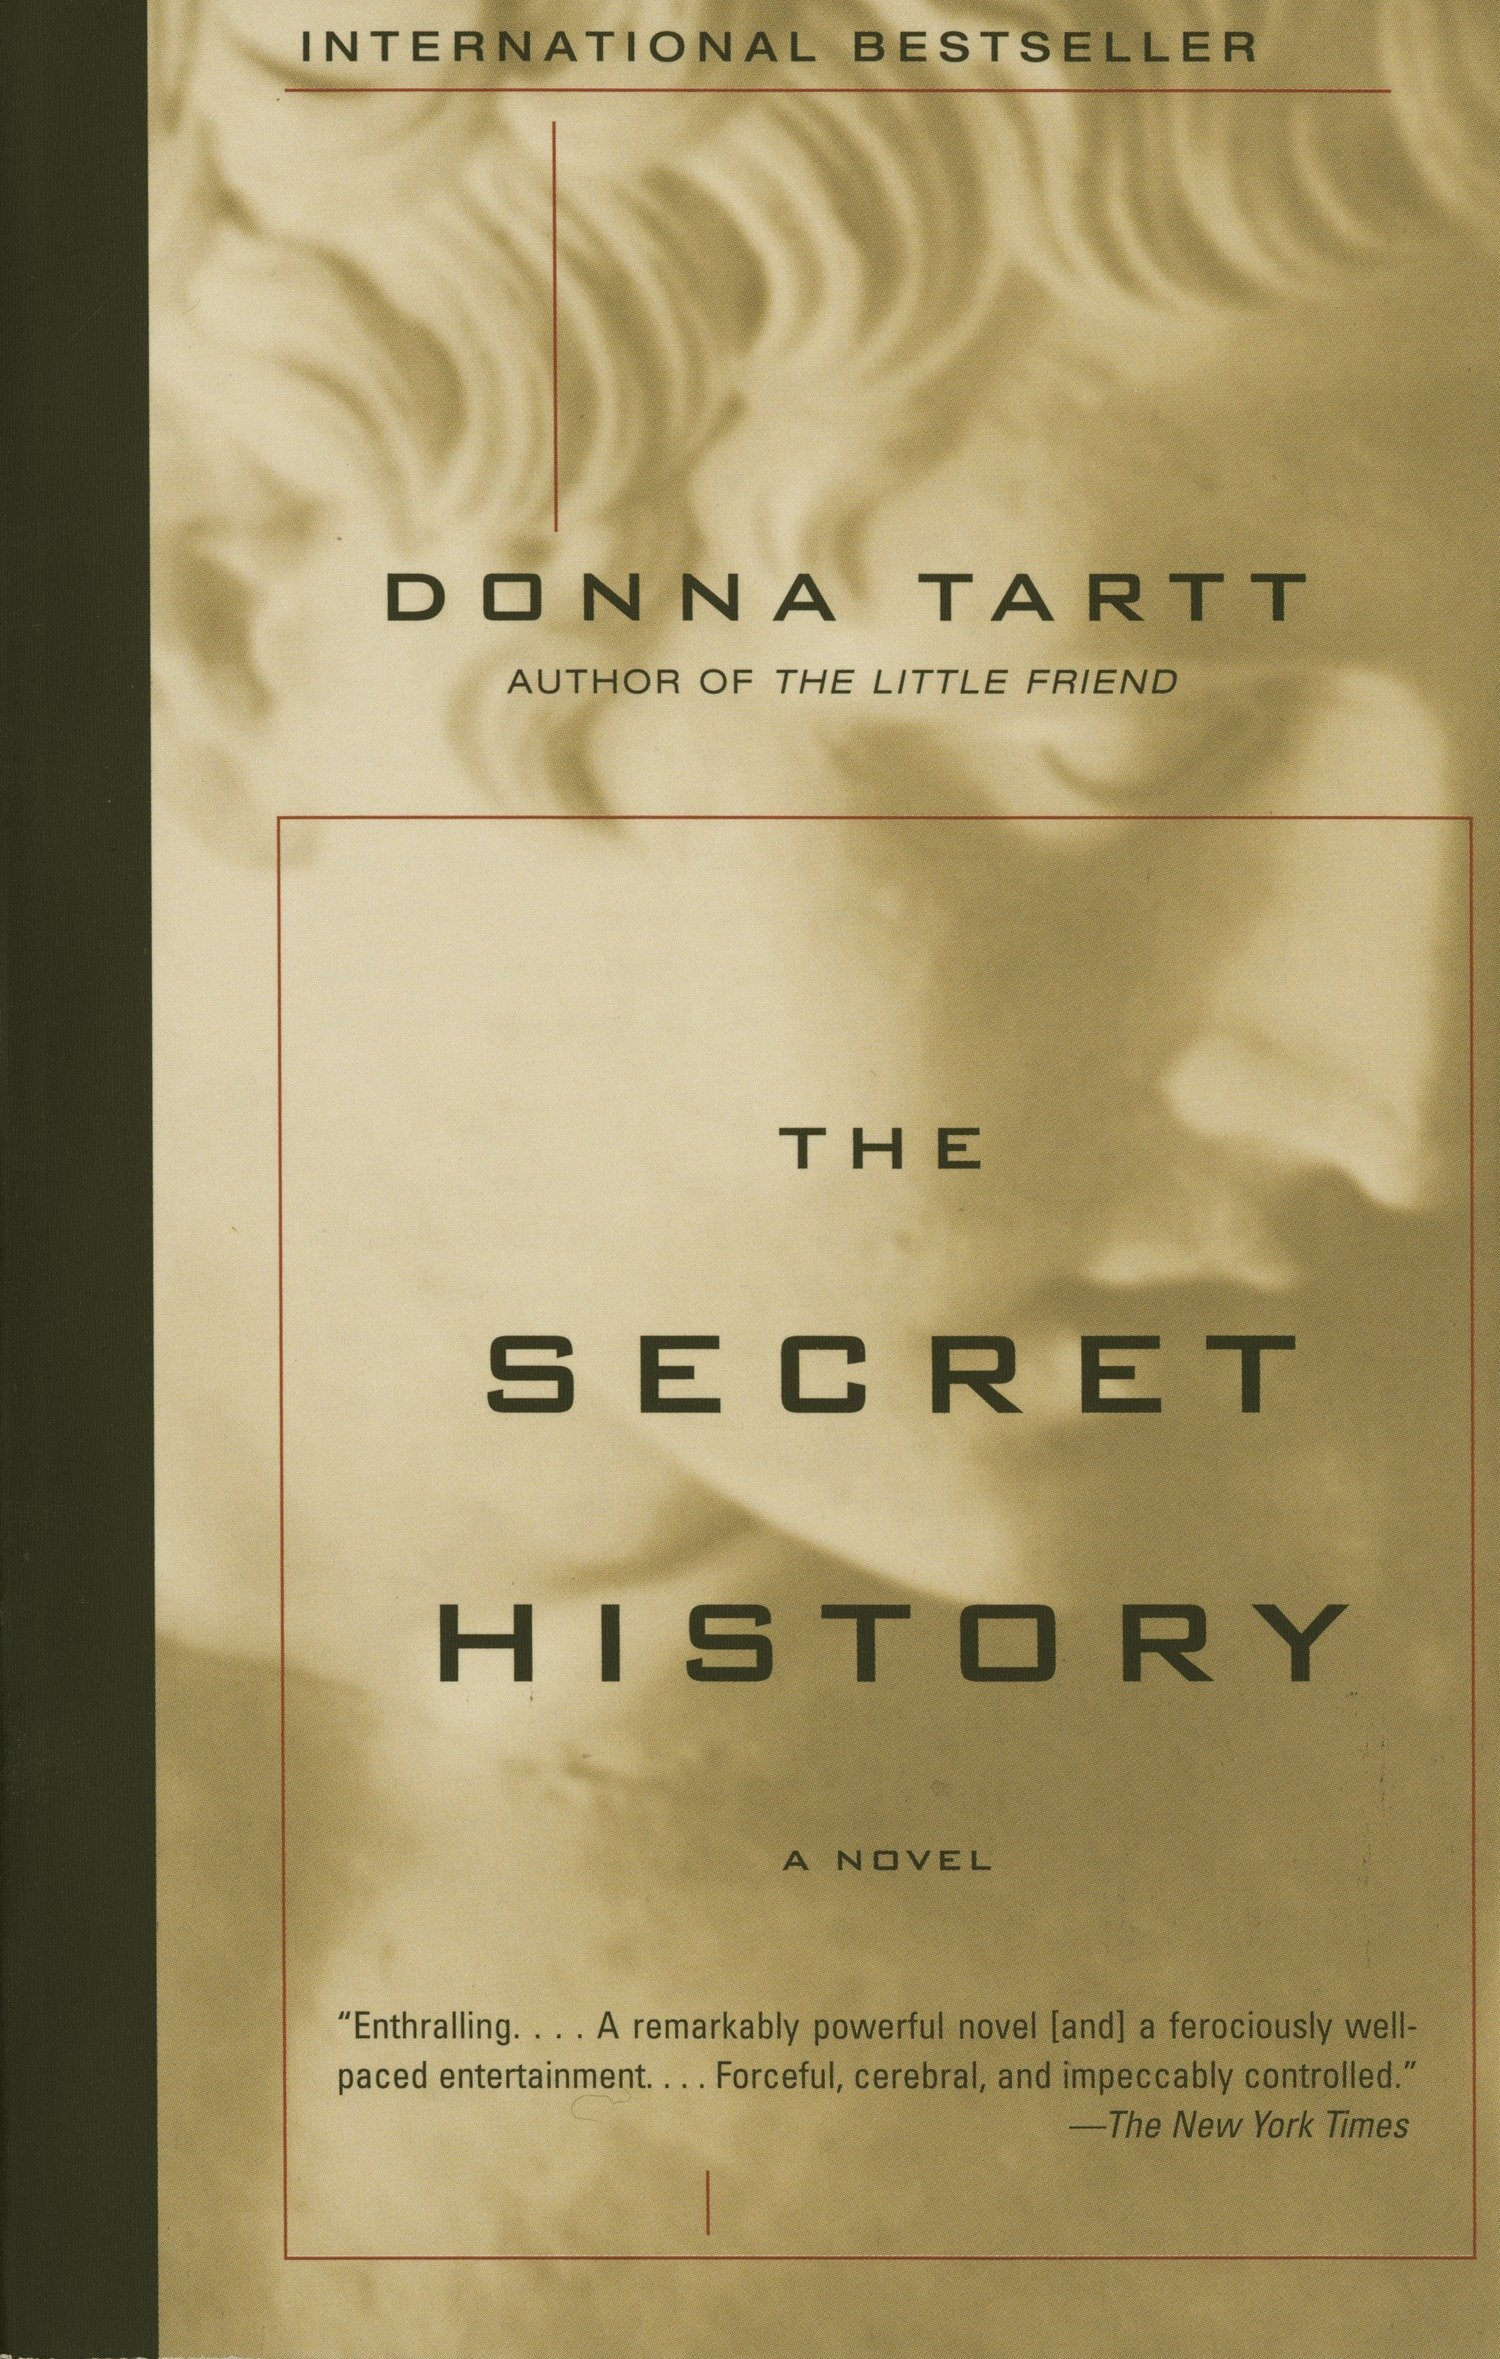 Image result for a secret history donna tartt